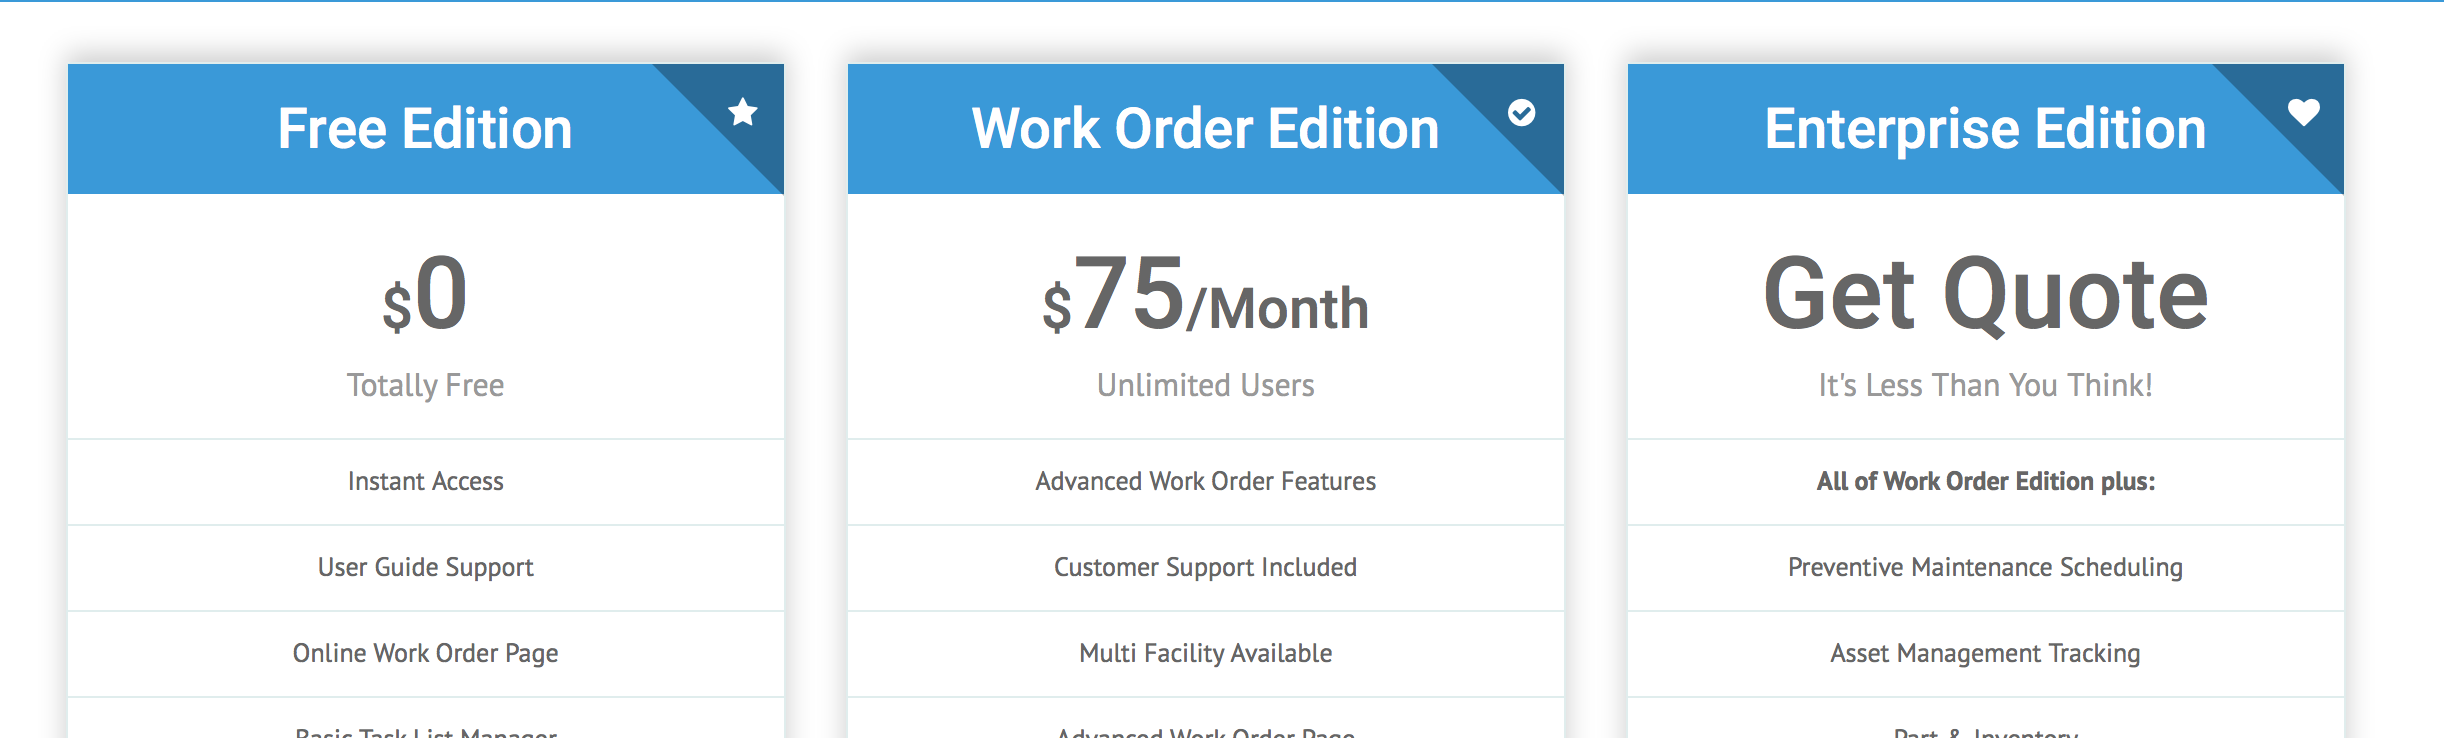 Free CMMS Software for Work Orders & Preventative Maintenance